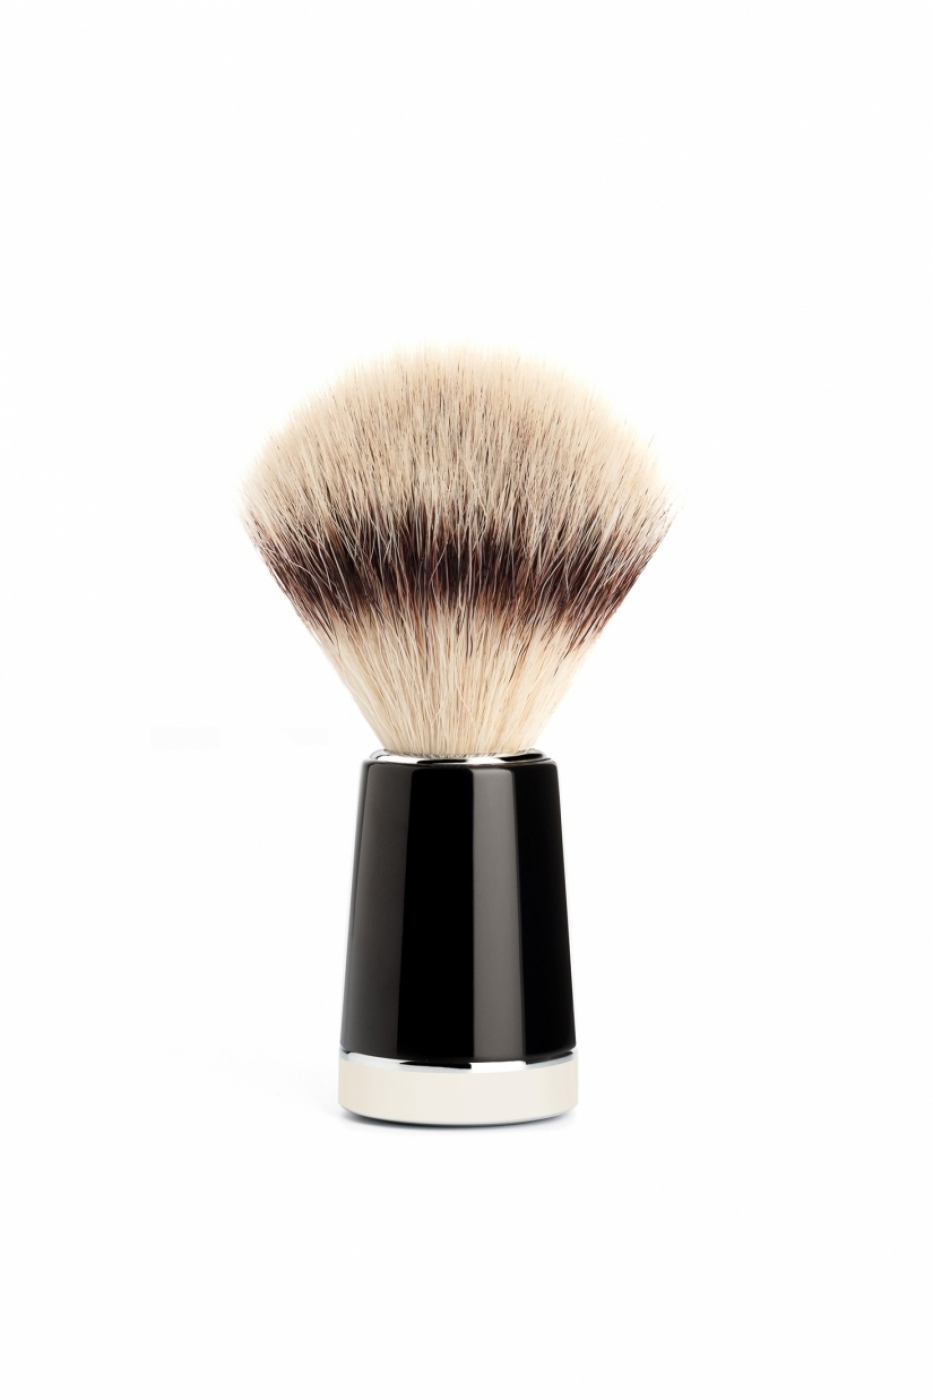 Hve Shop Parfum Grooming Shaving Brush